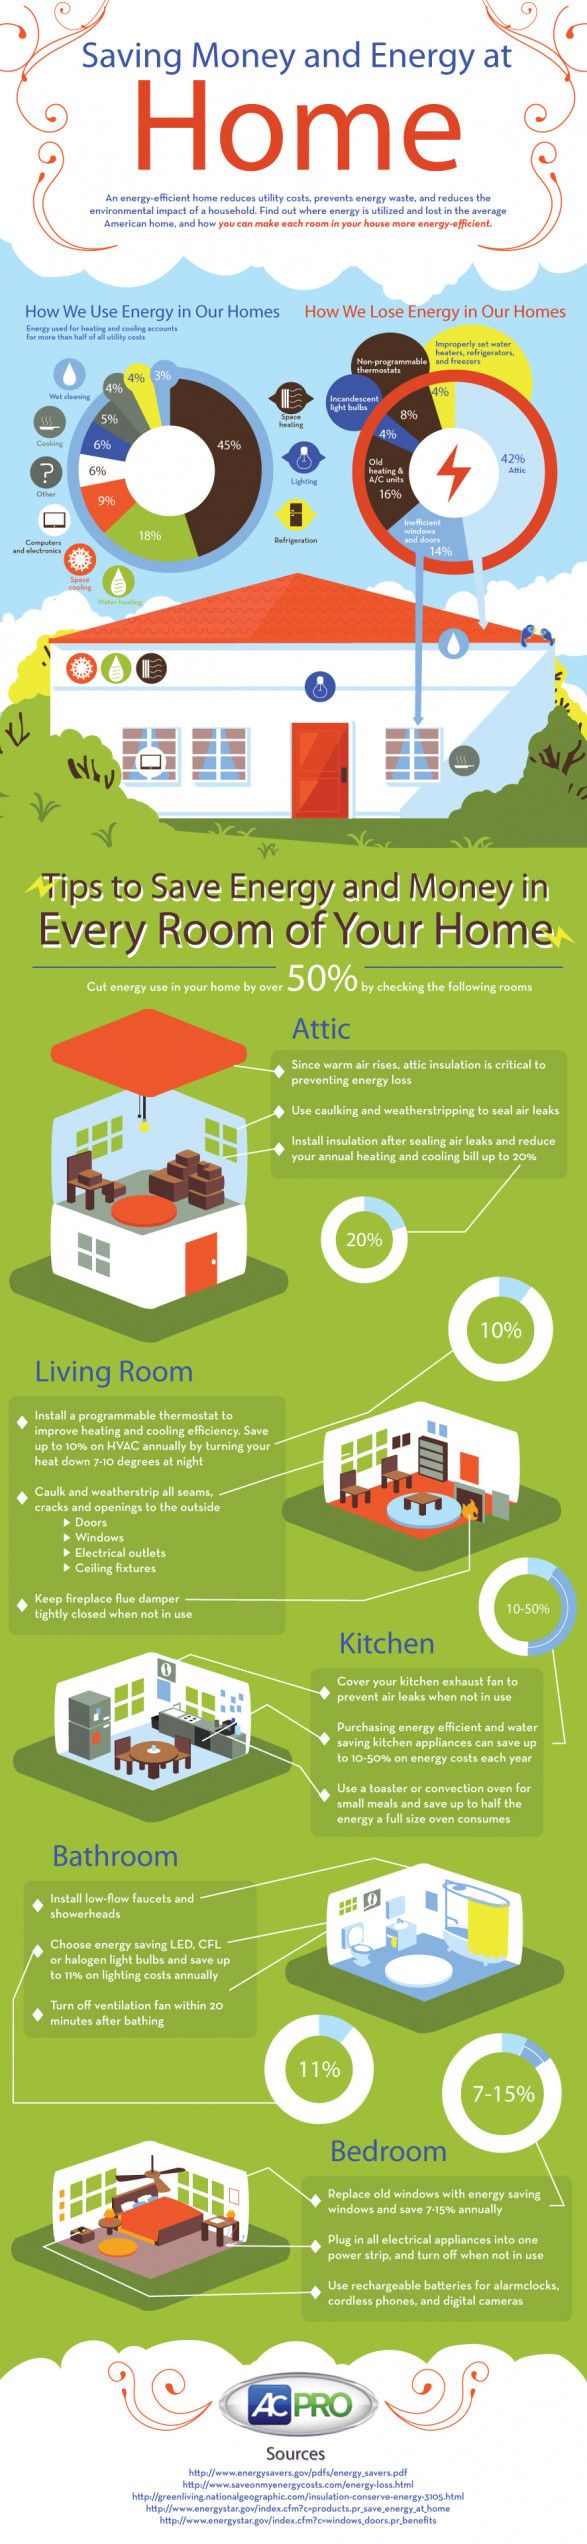 How to save energy and money in your home pratt homes for Ways to save energy at home for kids